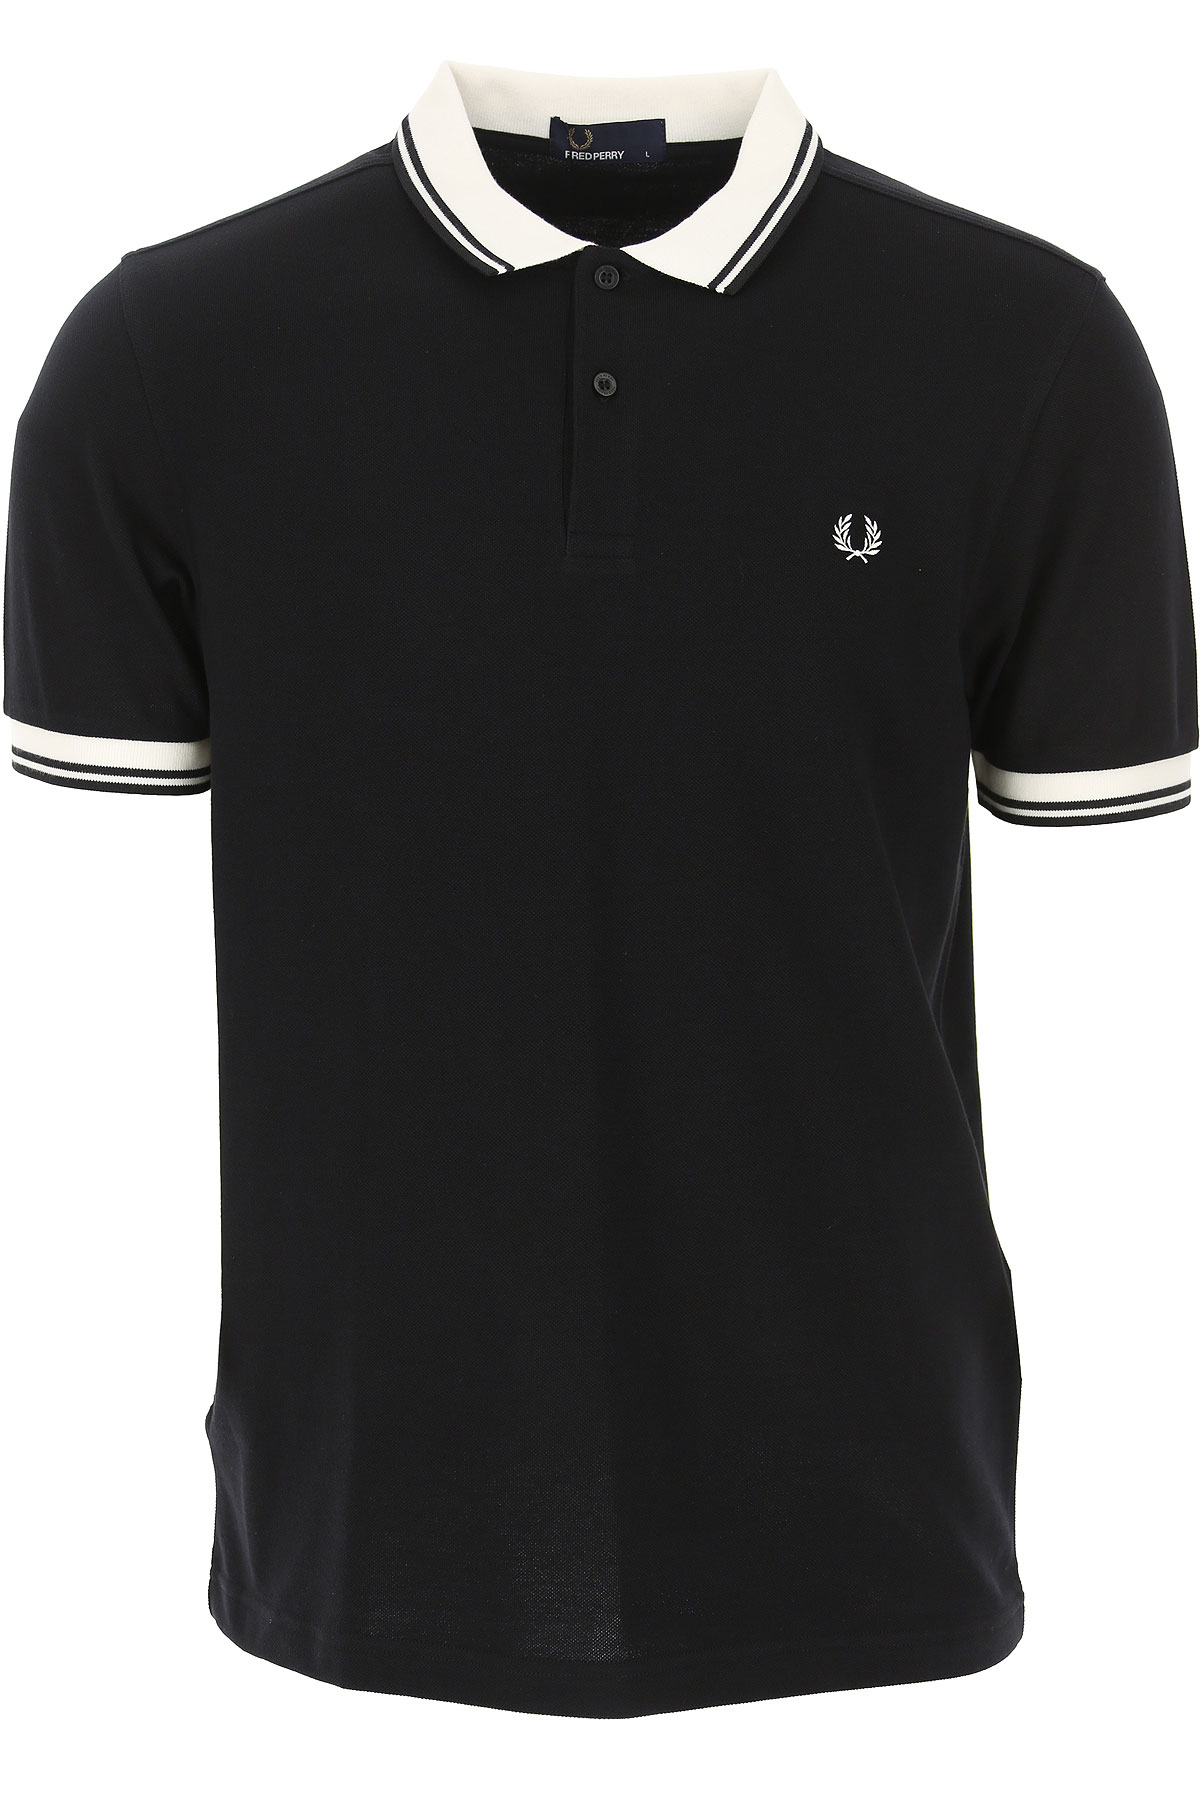 Fred Perry Polo Shirt for Men On Sale, Black, Cotton, 2019, M S